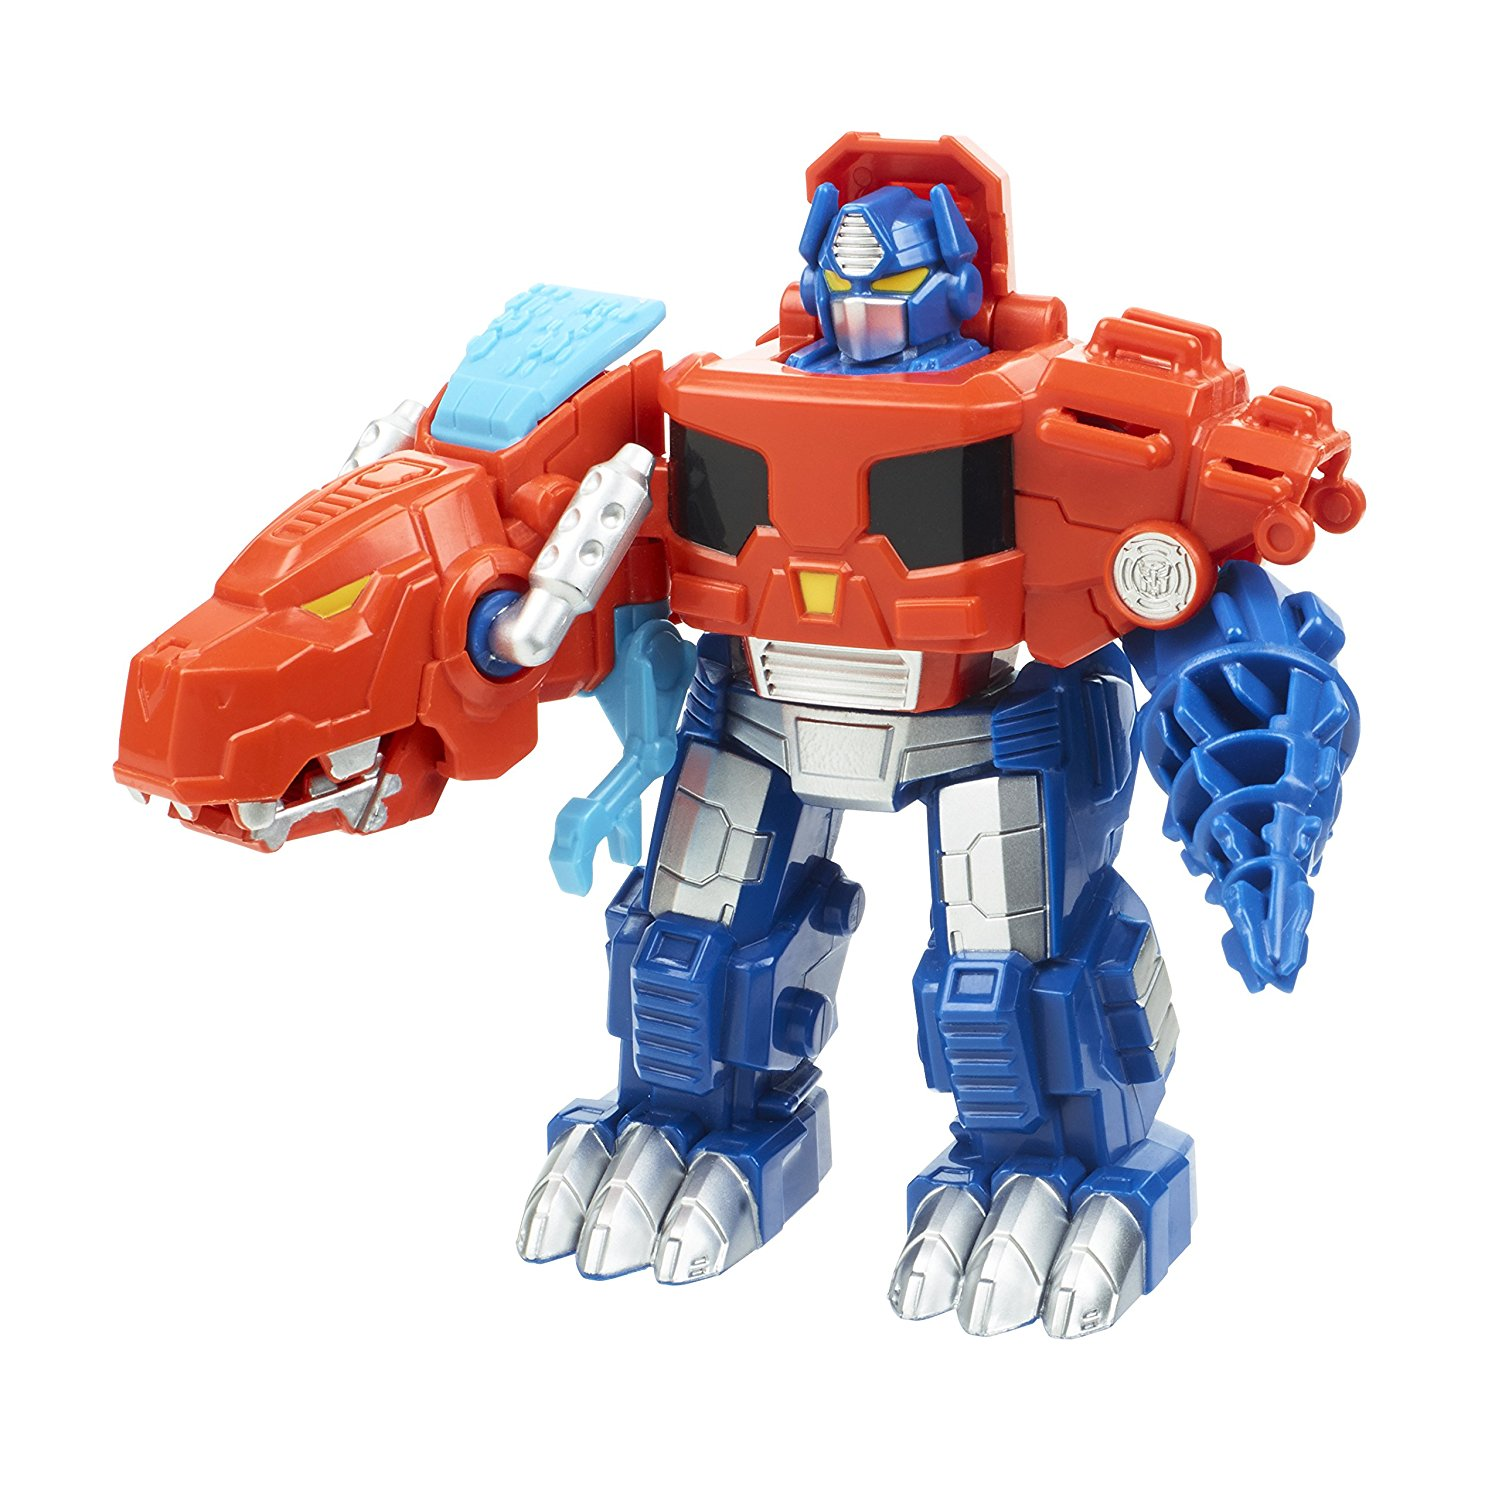 Heroes Transformers Rescue Bots Optimus Prime Figure, Kid-sized Rescue Bots figure looks... by